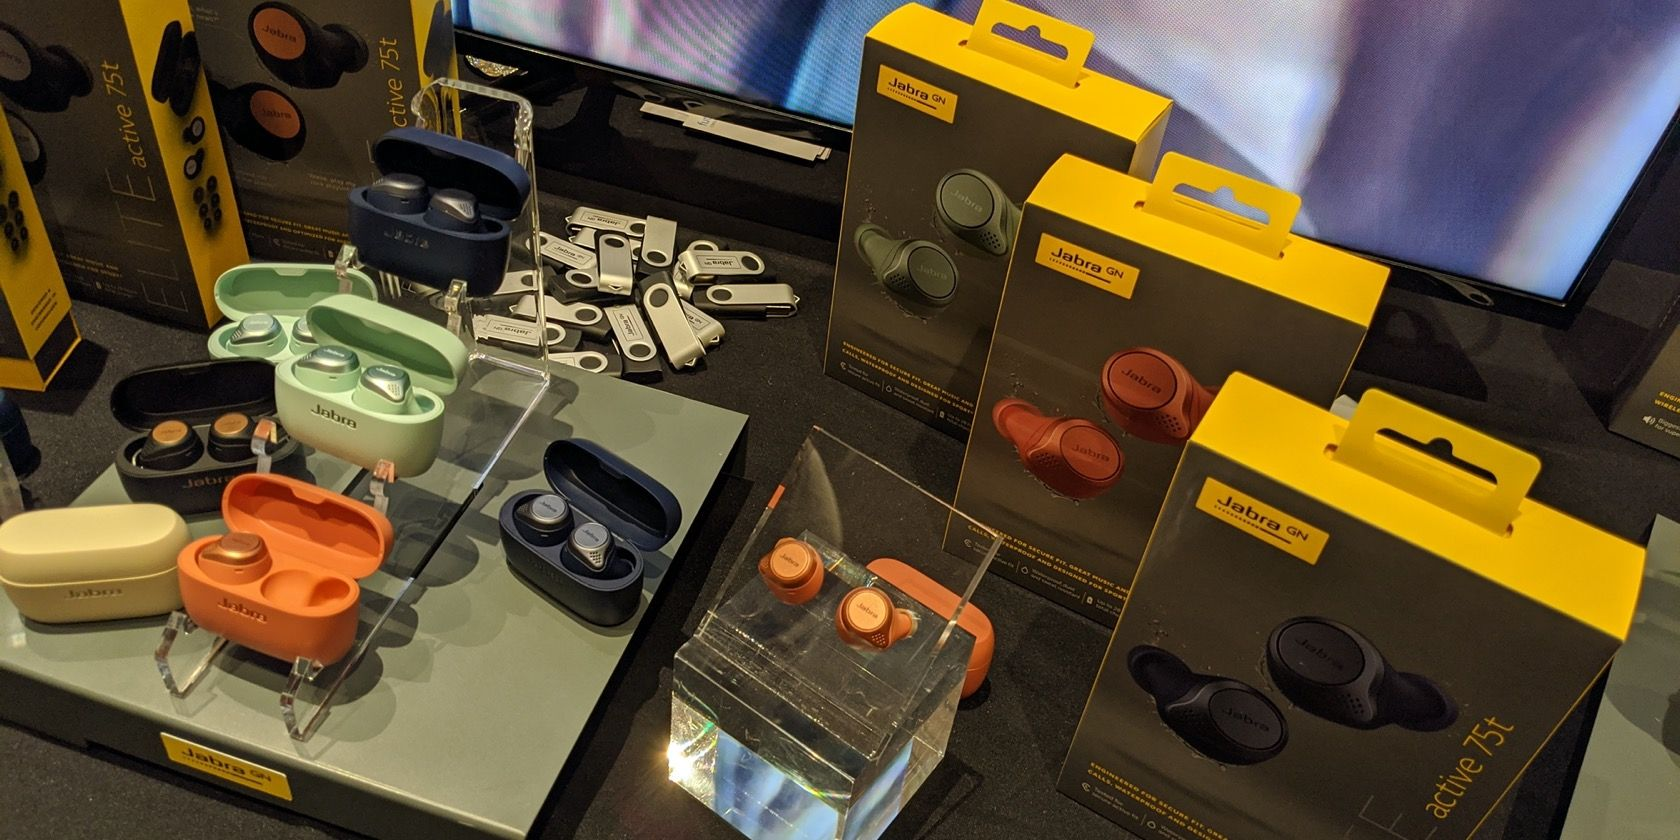 Jabra-Headphones-Eaburds-CES2020-Featured